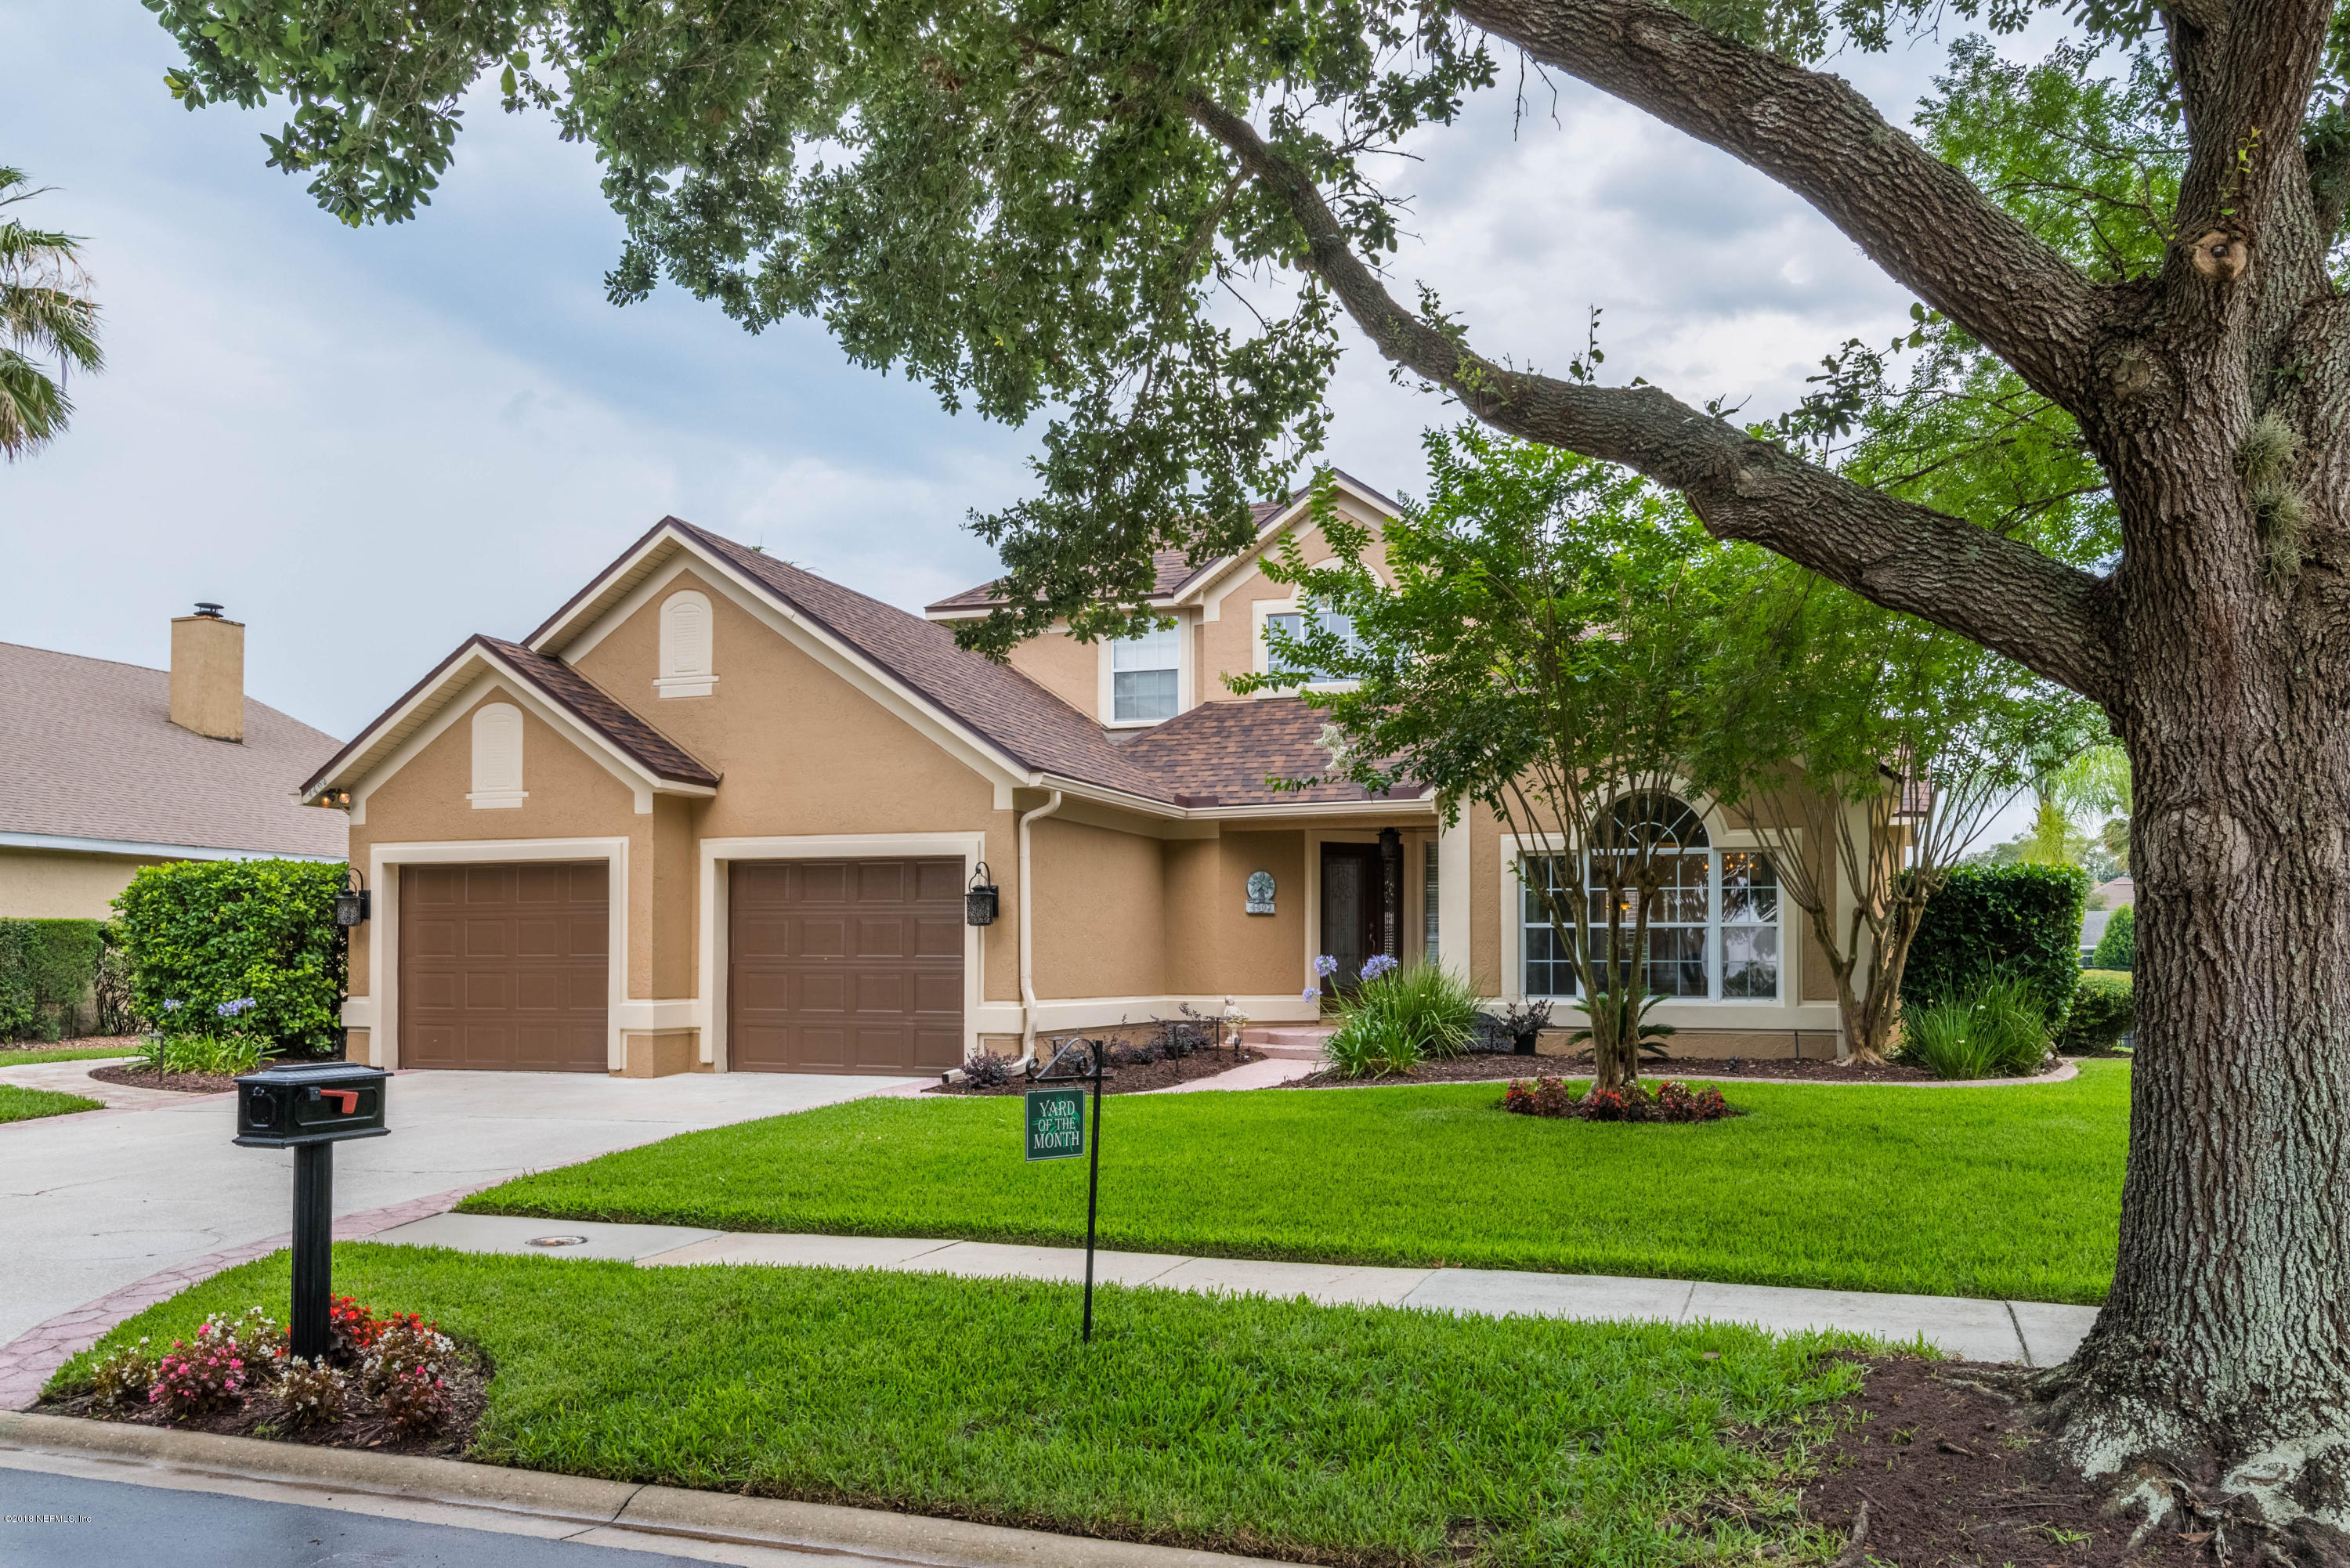 4402 SEABREEZE, JACKSONVILLE, FLORIDA 32250, 4 Bedrooms Bedrooms, ,2 BathroomsBathrooms,Residential - single family,For sale,SEABREEZE,941172